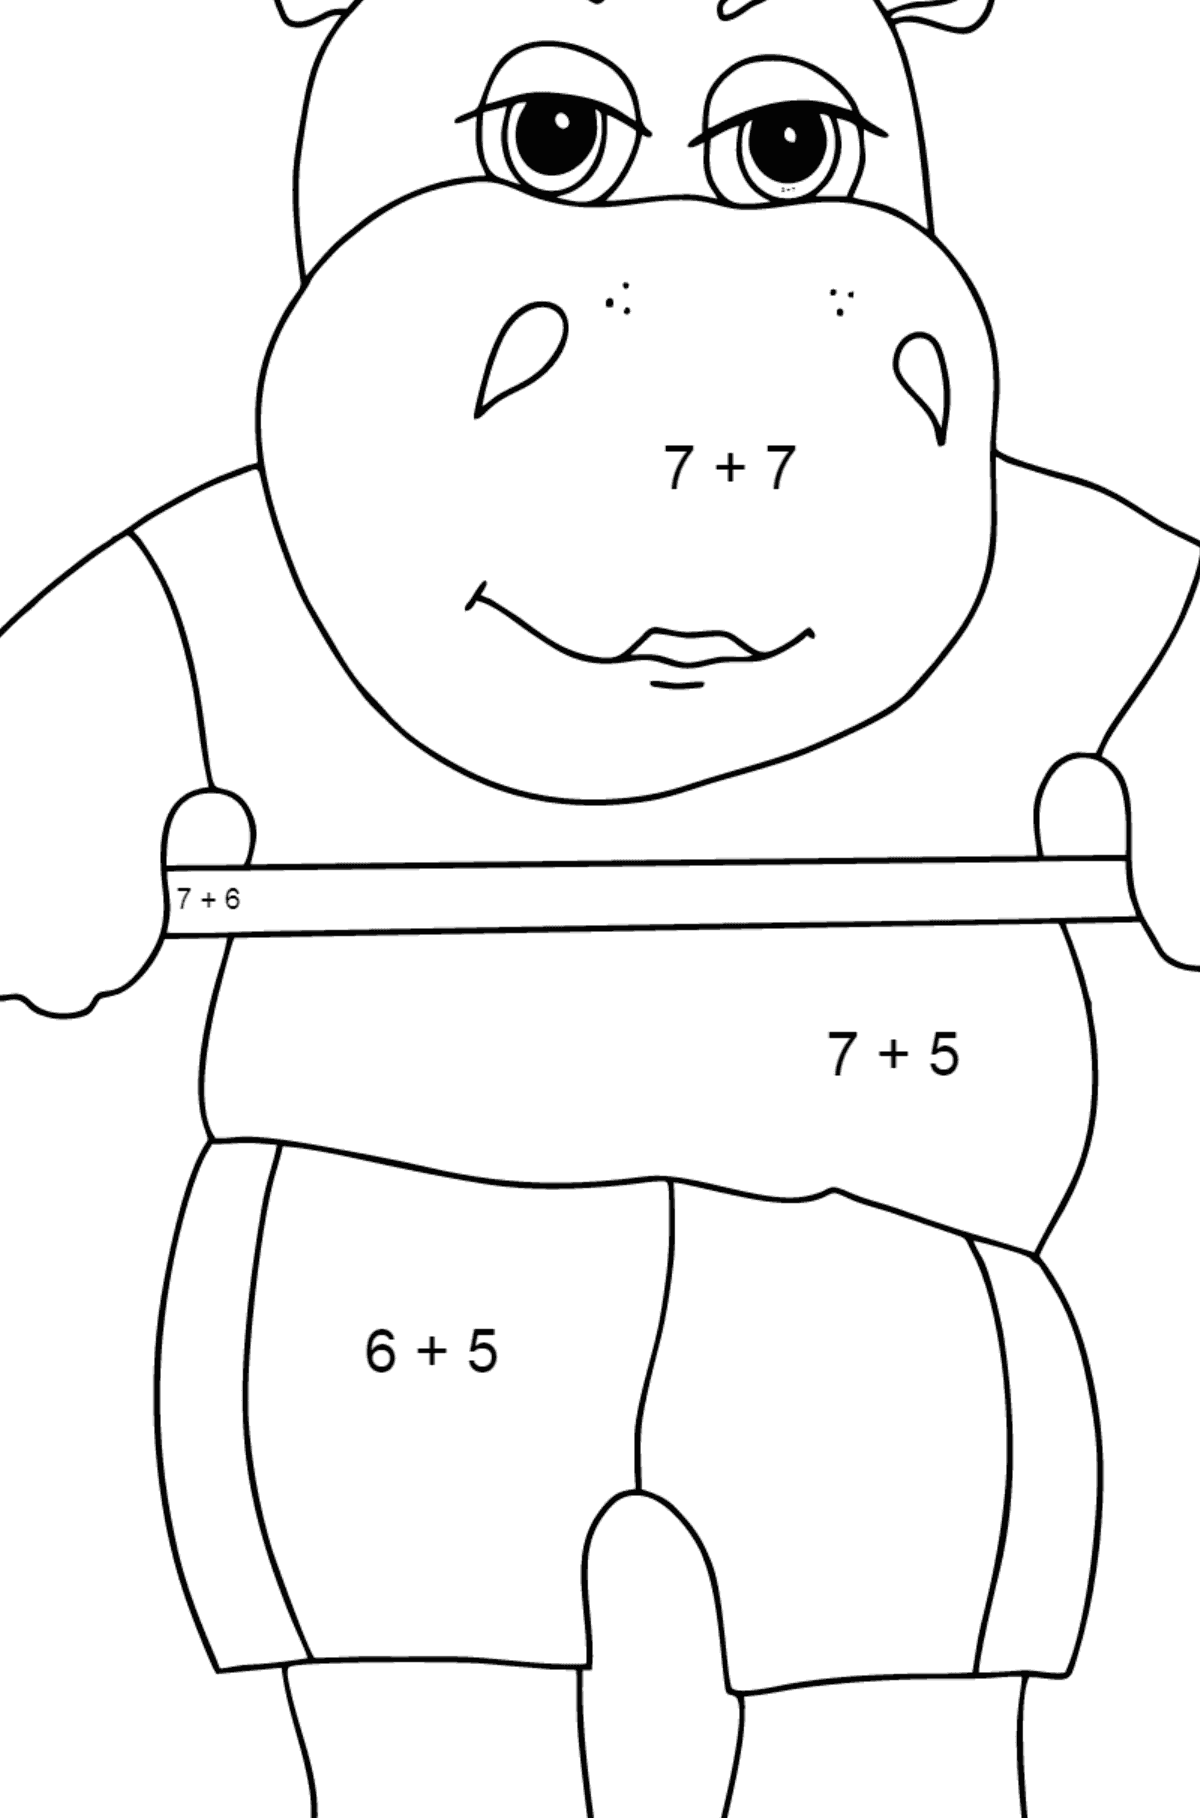 Coloring Page - A Hippo with a Barbell for Kids  - Color by Number Addition